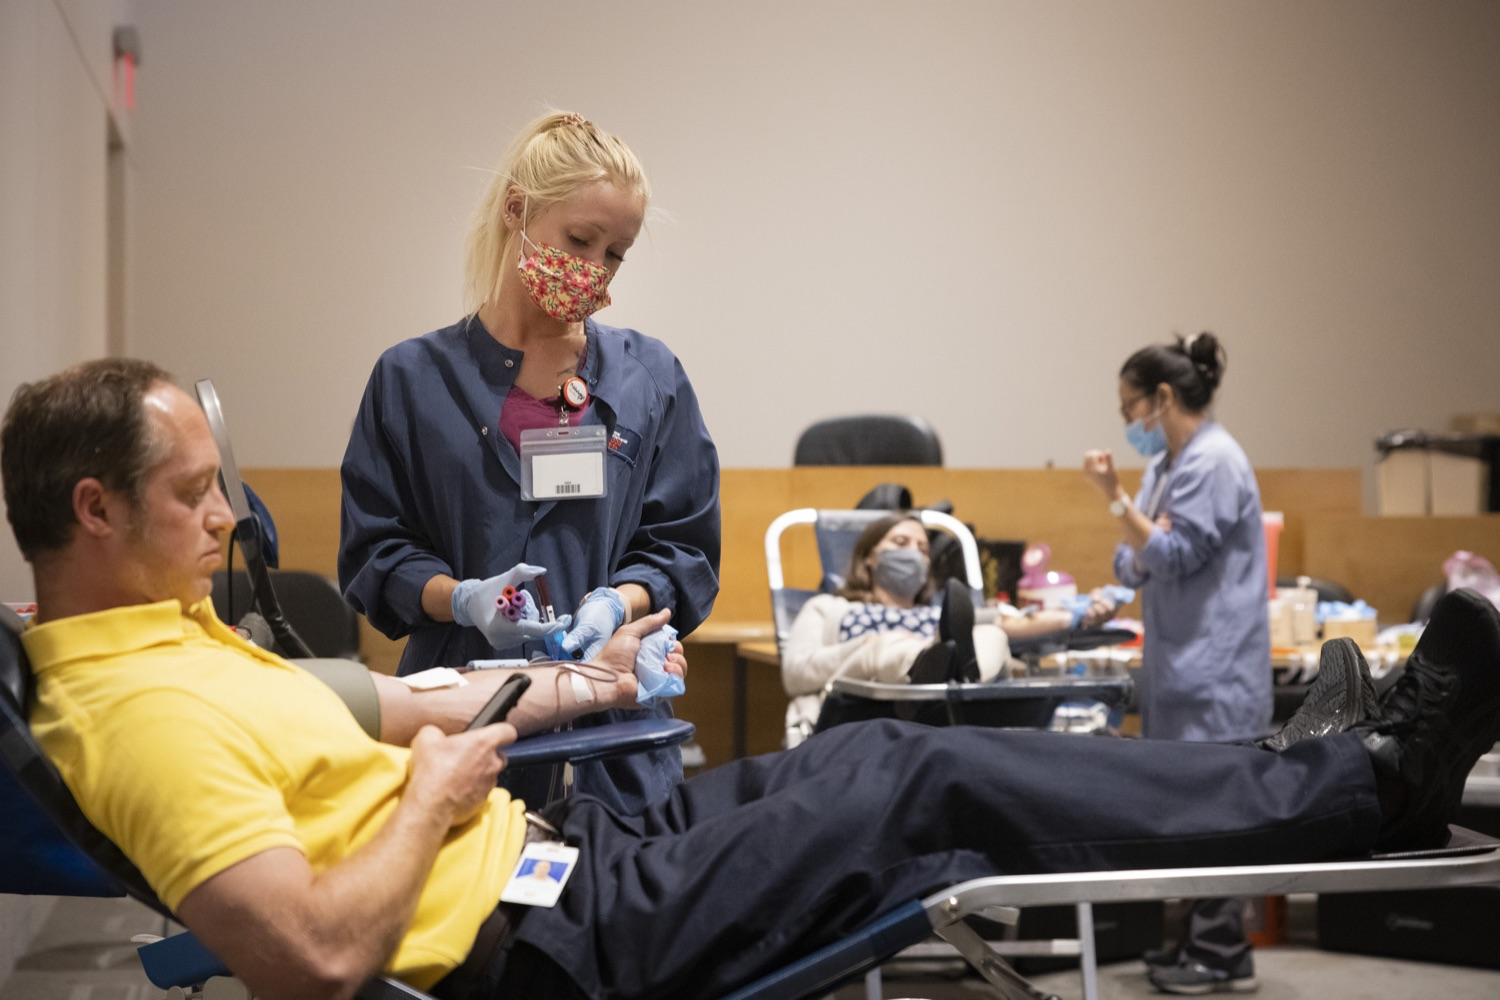 """<a href=""""https://filesource.wostreaming.net/commonwealthofpa/photo/18929_doh_blooddrive_dz_001.jpg"""" target=""""_blank"""">⇣Download Photo<br></a>Phlebotomists working with donors at the blood drive. Department of Health Acting Physician General Dr. Denise Johnson joined representatives from Pennsylvania Blood Centers to discuss the importance of donating blood, as the number of volunteers who regularly donate blood has dramatically decreased due to the ongoing COVID-19 pandemic.  Harrisburg, PA - August 19, 2021"""